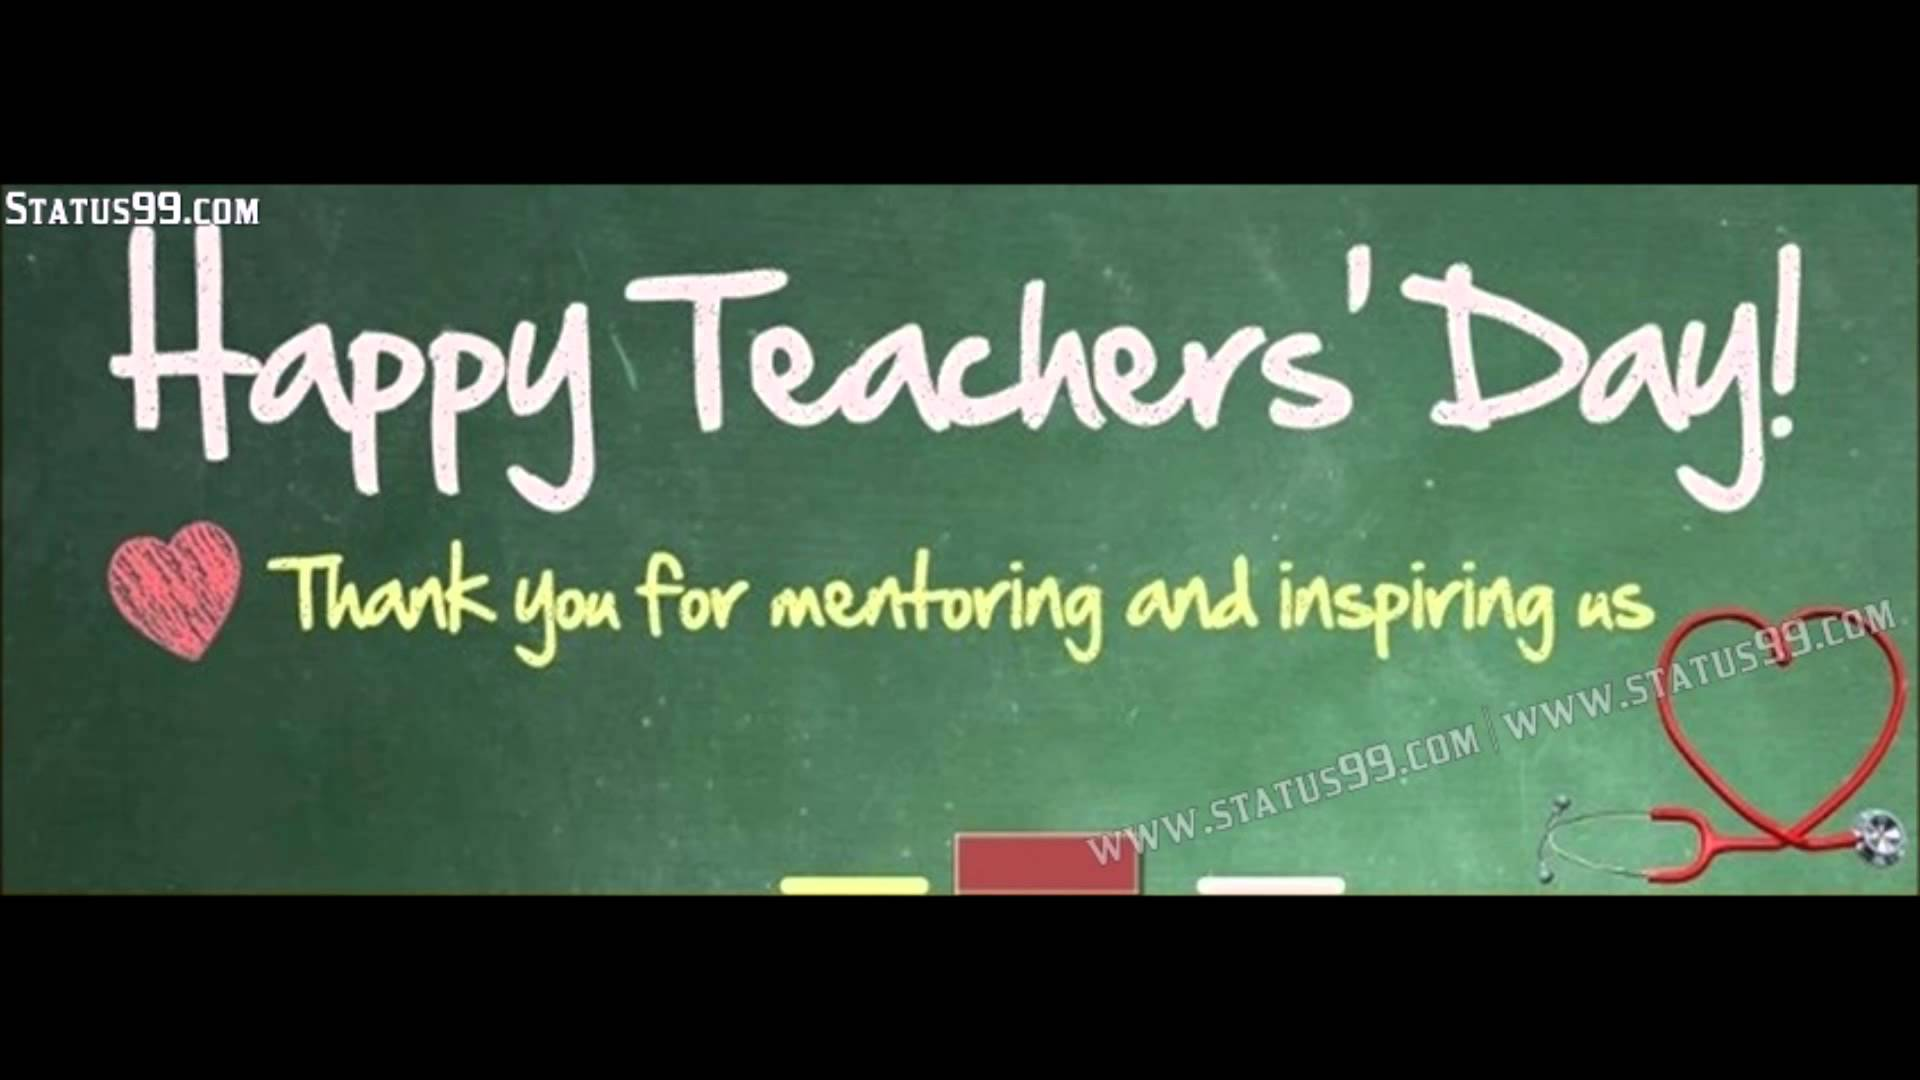 50 Happy World Teachers Day Wishes Images And Photos 1920x1080